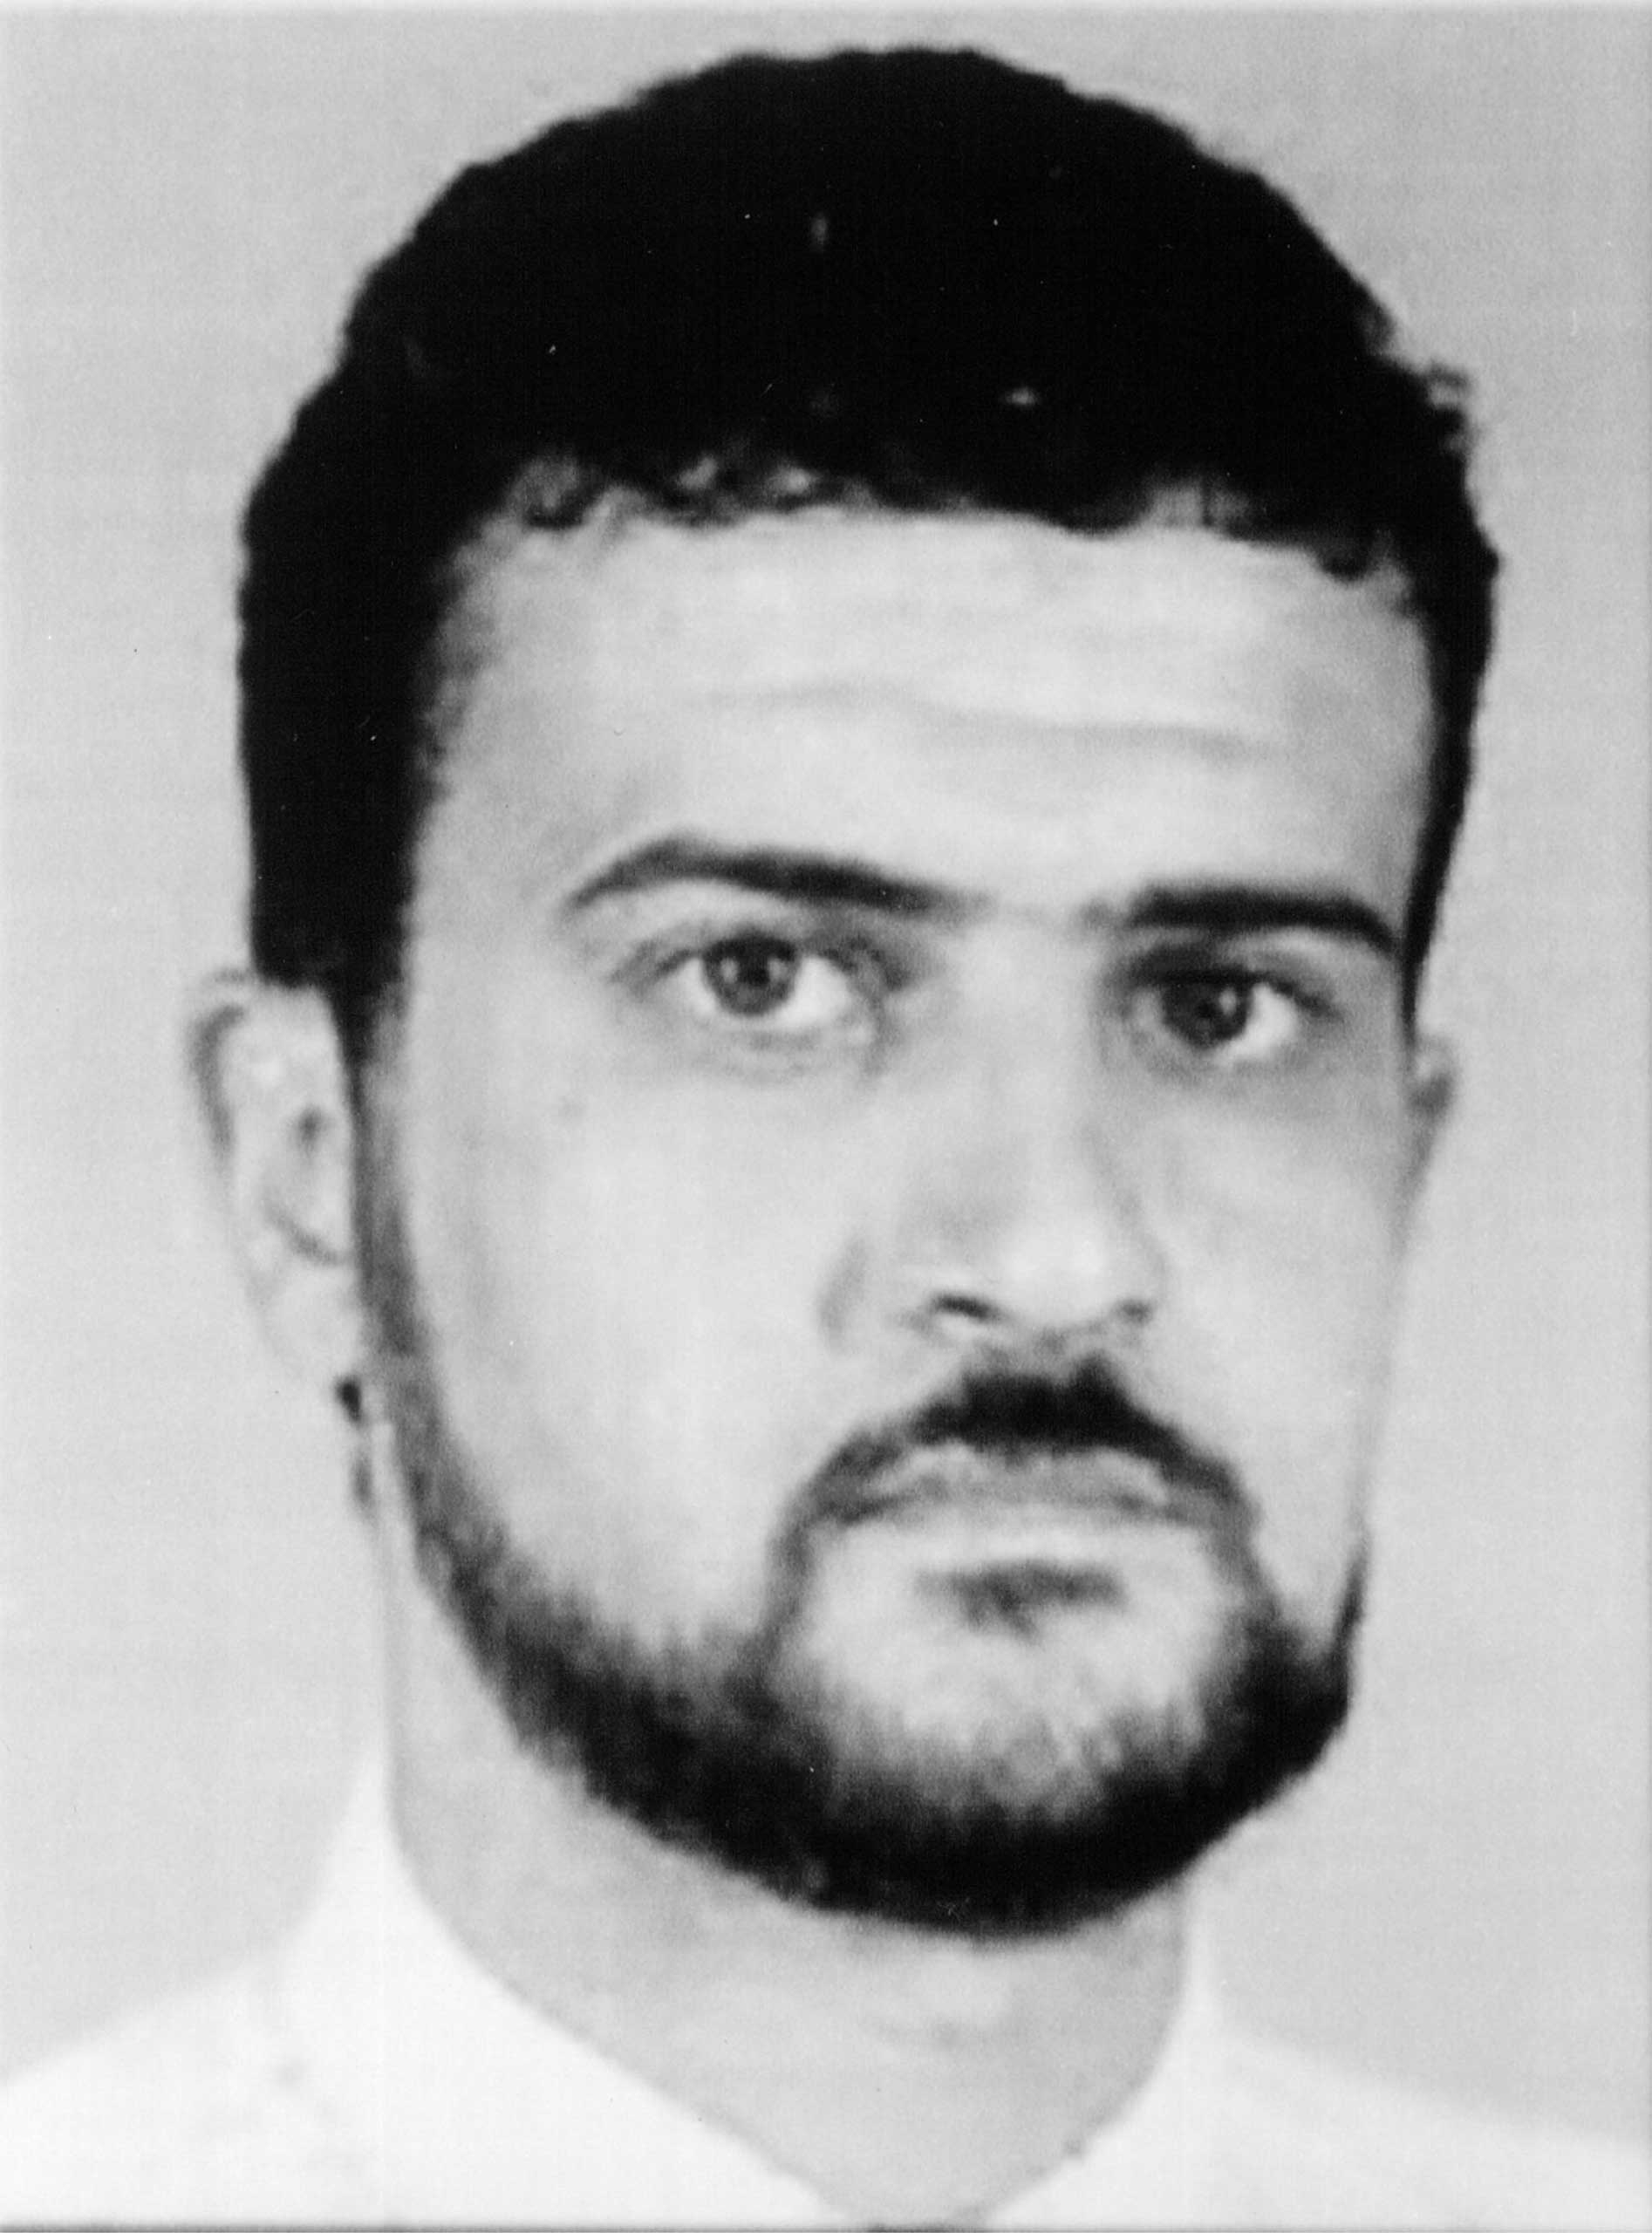 Anas Al-Liby is shown in this photo released by the FBI on Oct. 10, 2001 in Washington, D.C.